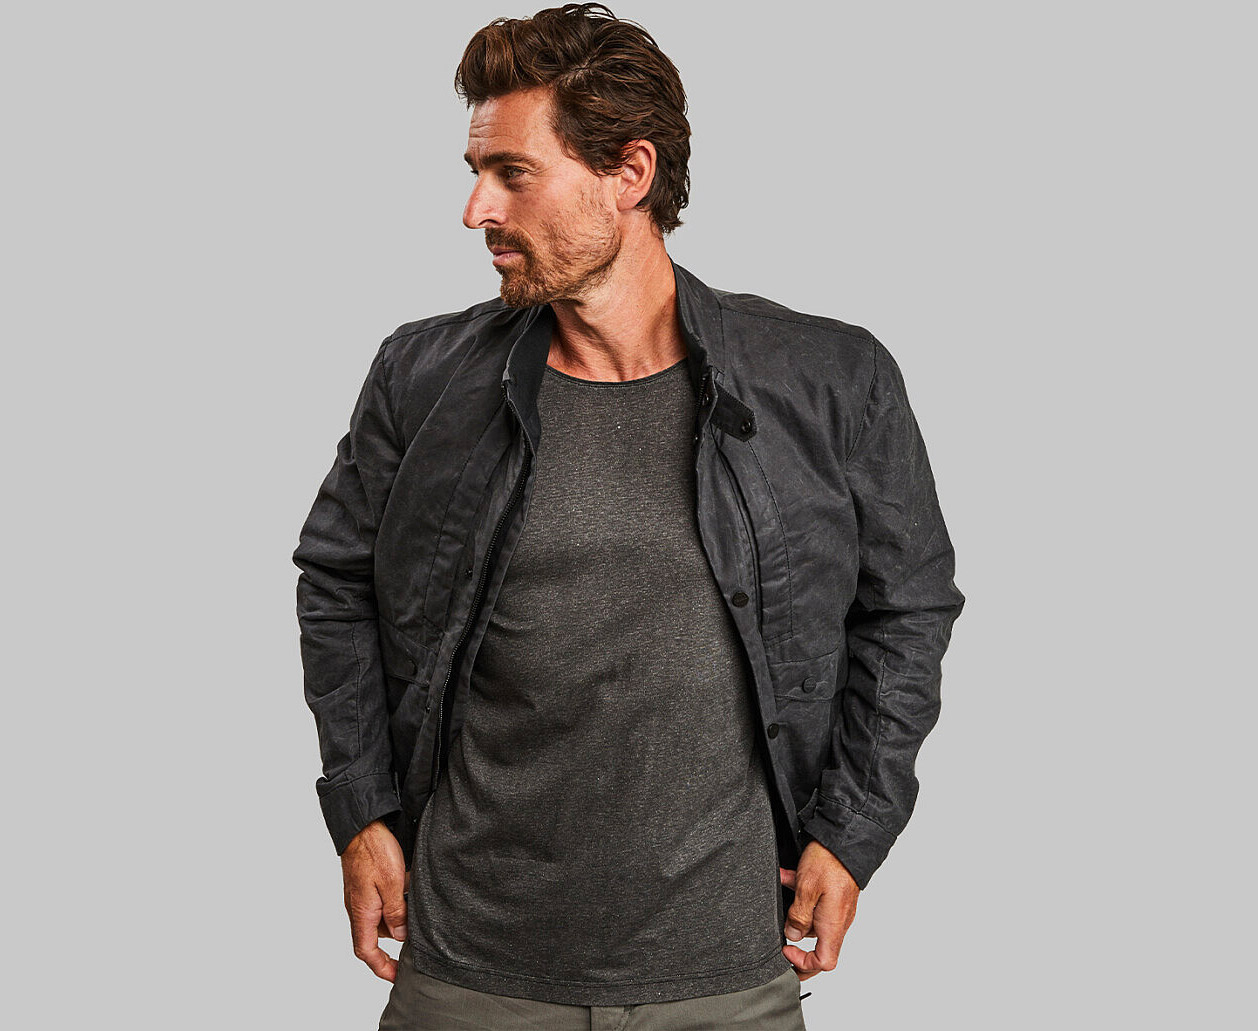 Vollebak's Military-Inspired Planet Earth Jacket at werd.com